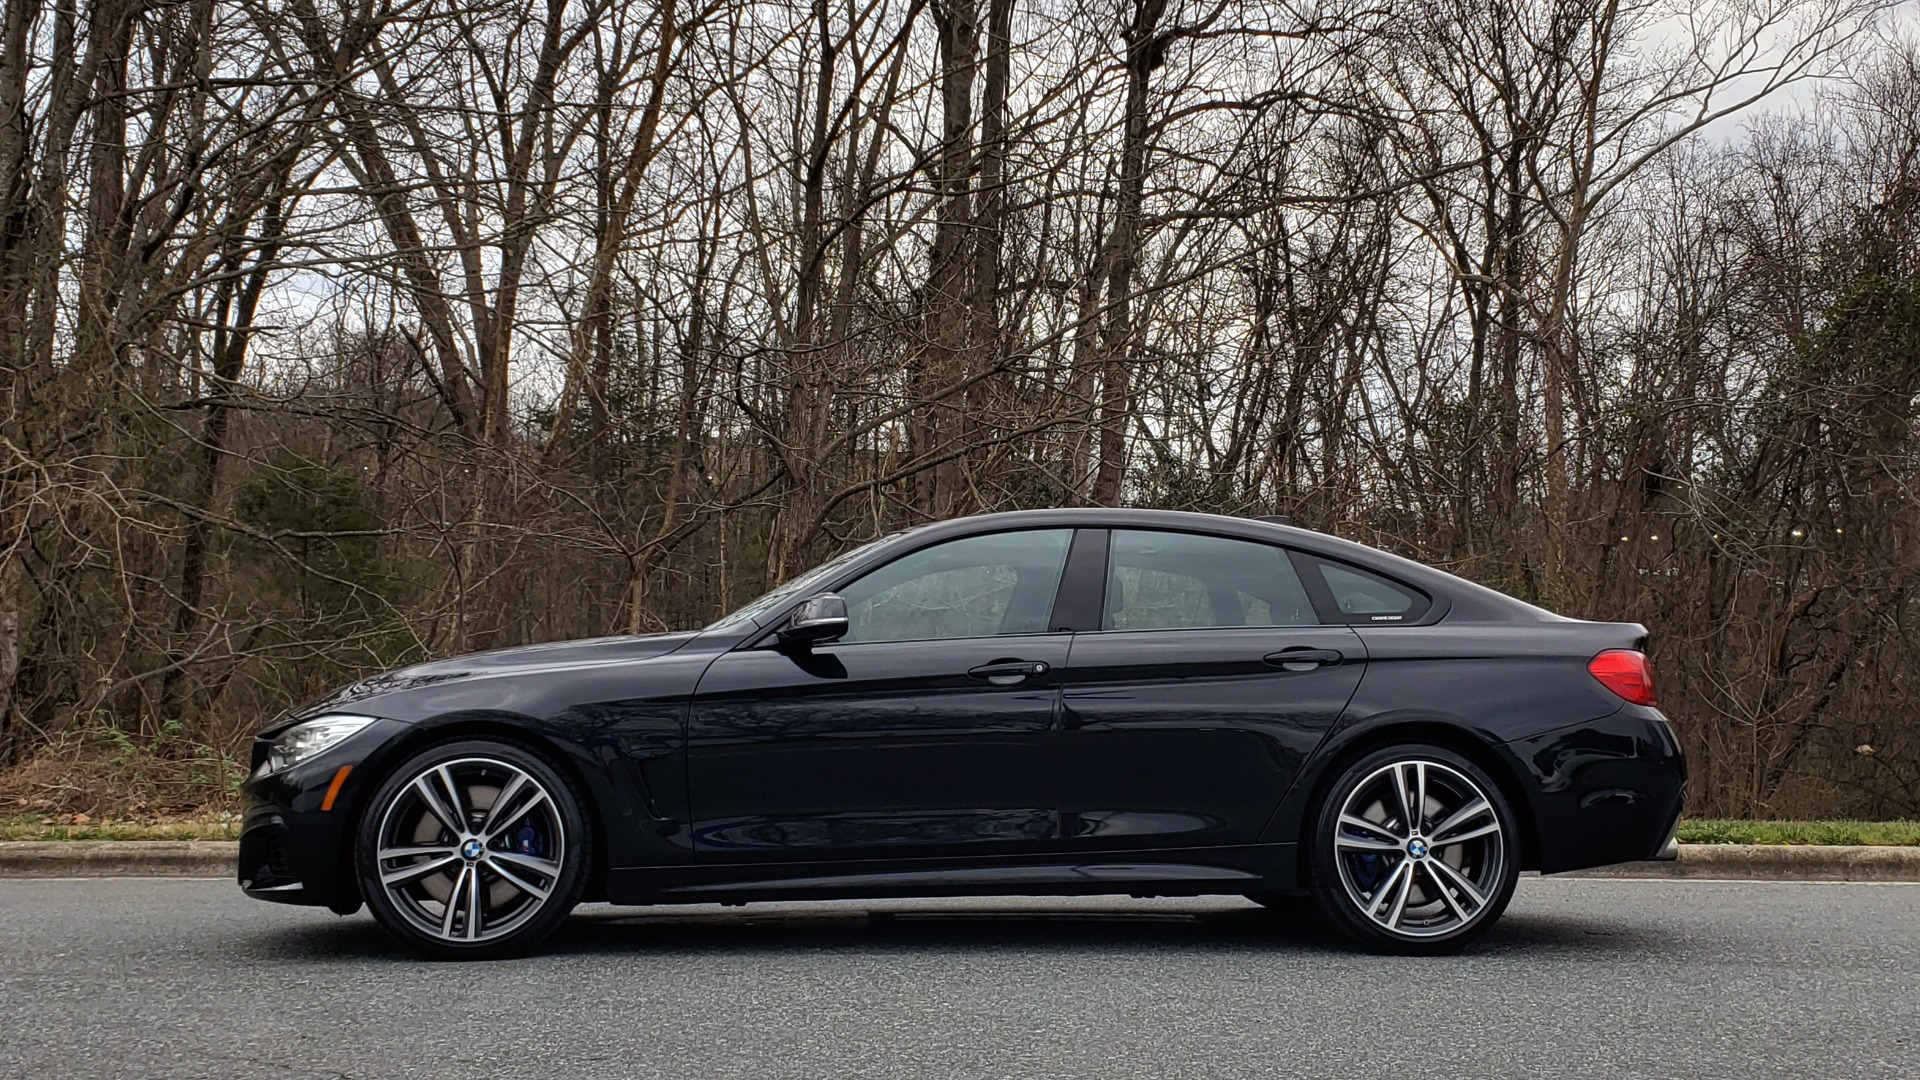 Used 2017 BMW 4 SERIES 440i M-SPORT / TECH / TRACK HANDLING / APPLE CAR PLAY for sale Sold at Formula Imports in Charlotte NC 28227 3